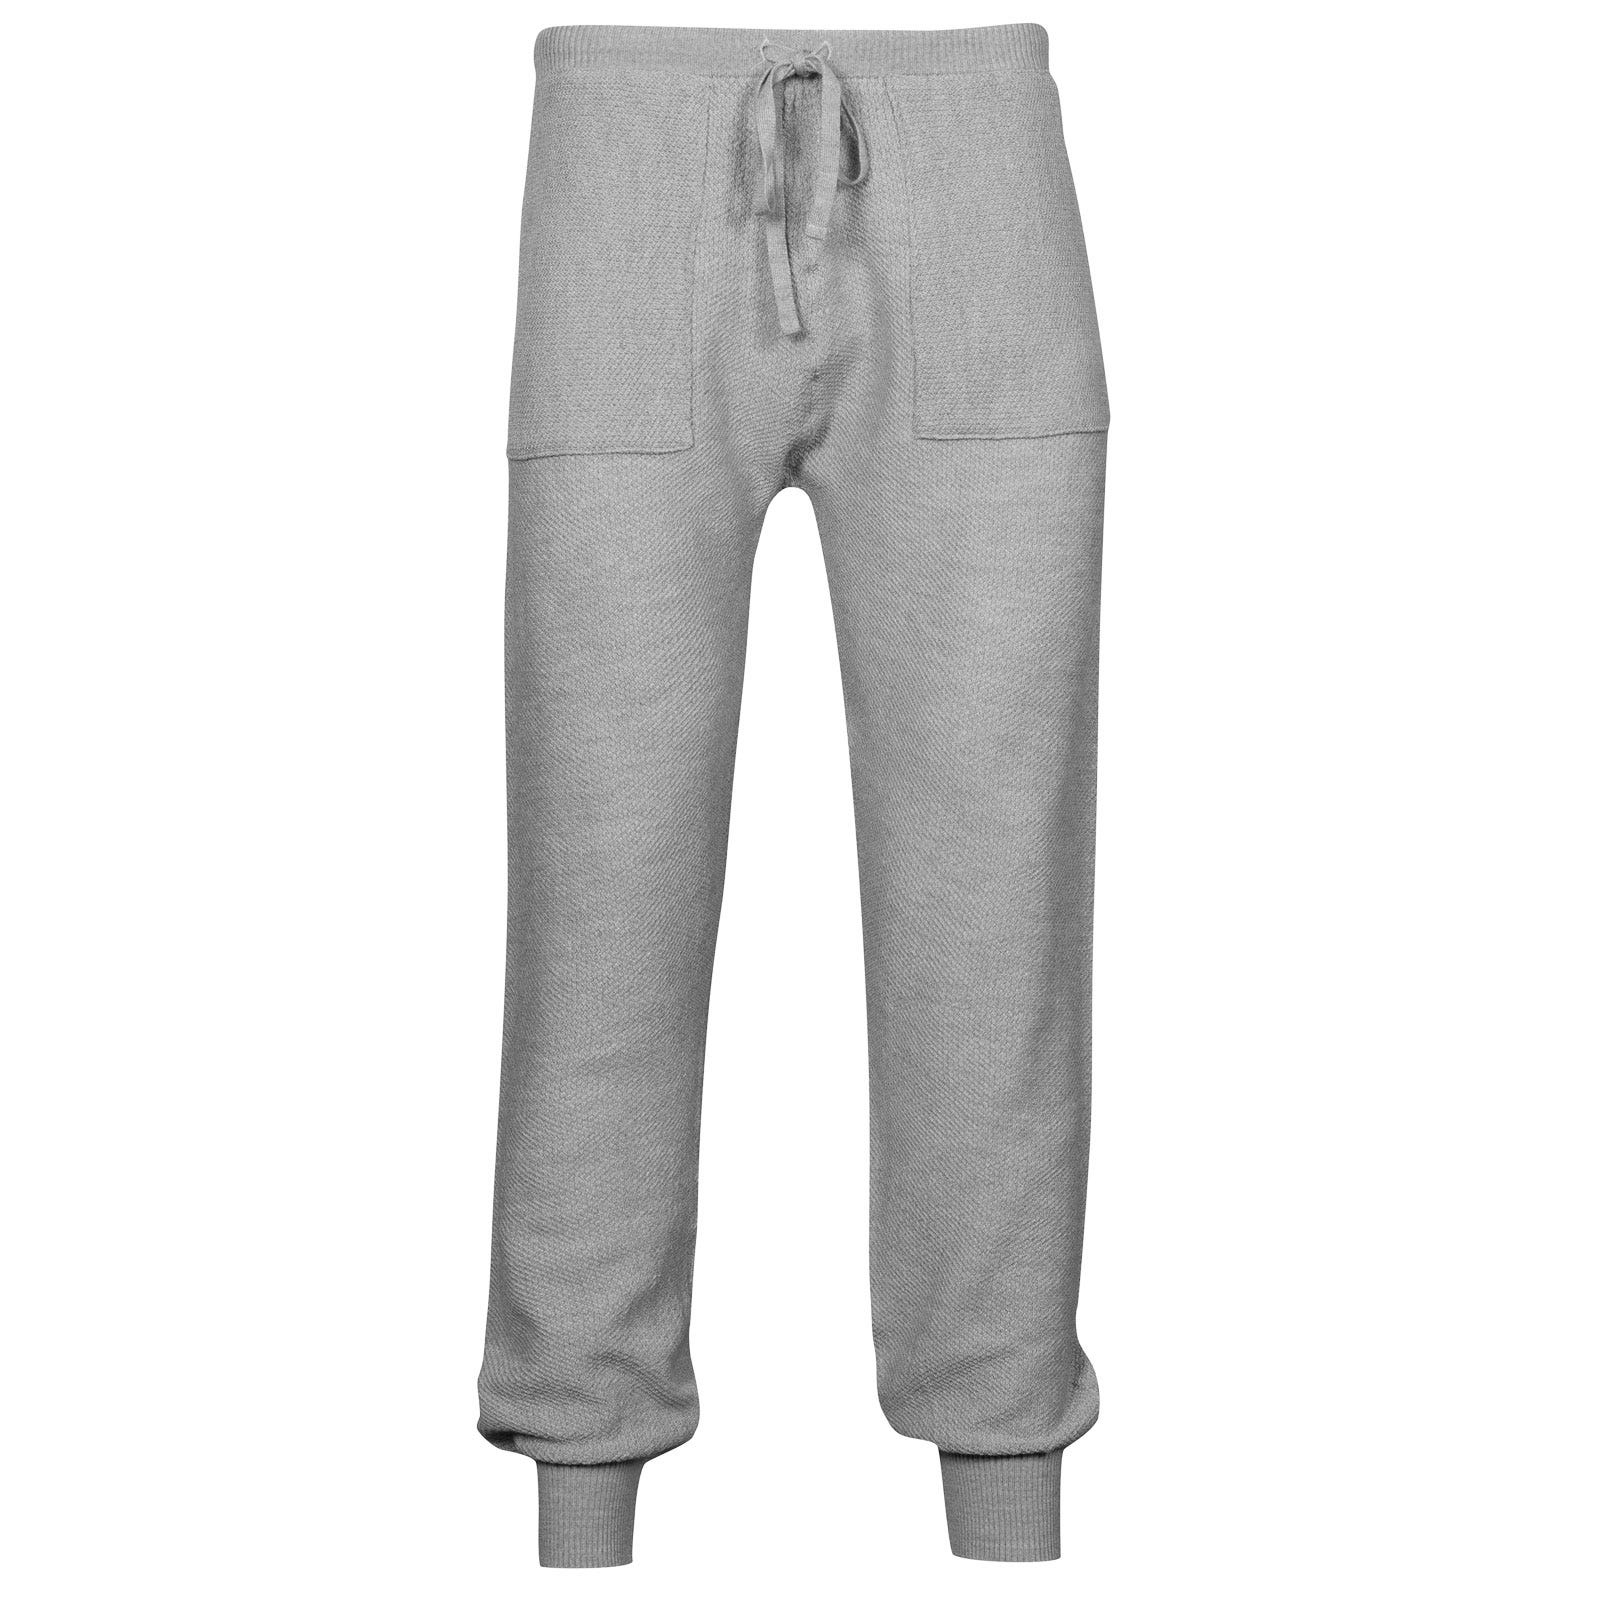 John Smedley 5Singular Merino Wool Trouser in Bardot Grey-XL